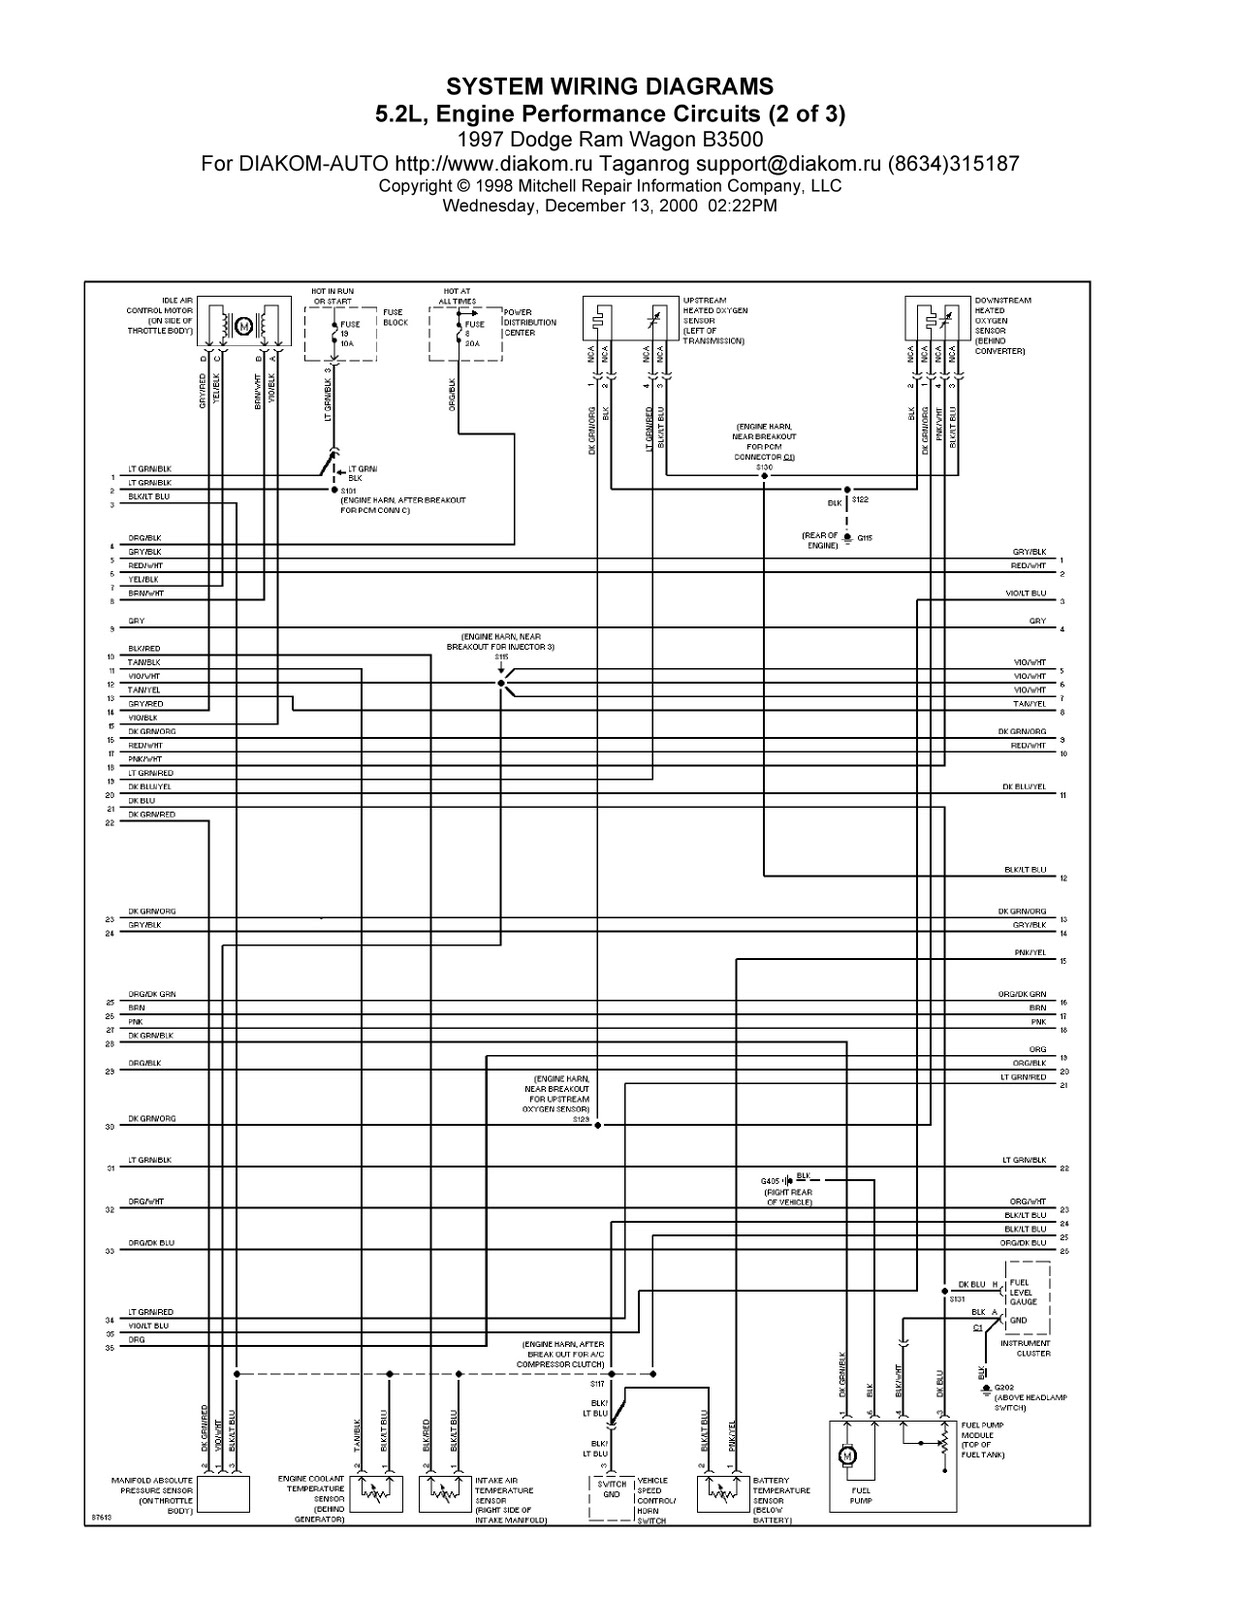 Dodge Ram Wiring Diagram 2005 Clarion Xmd1 3500 Battery Get Free